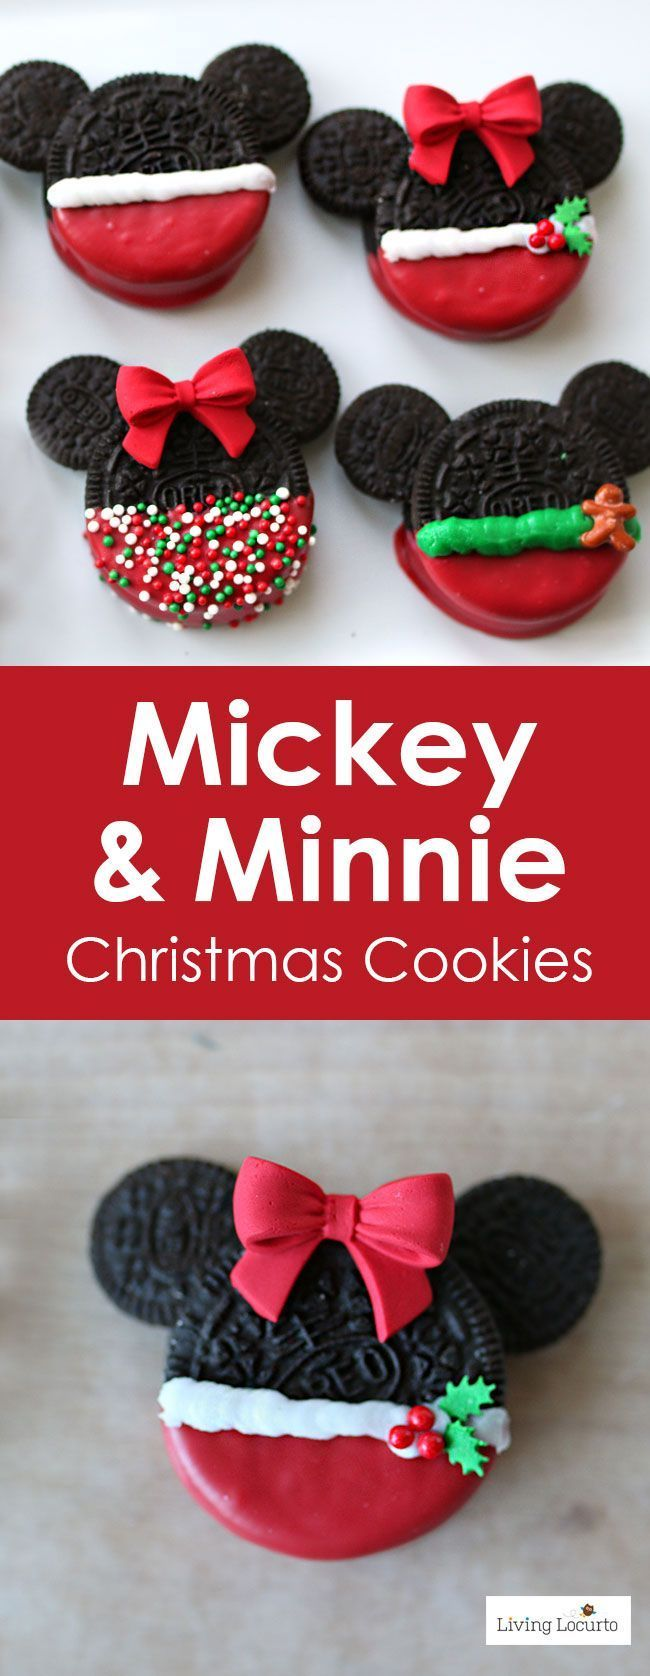 #recipes #desserts #food #christmas #cookies #oreo #mickeymouse #disney #minniemouse #xmas